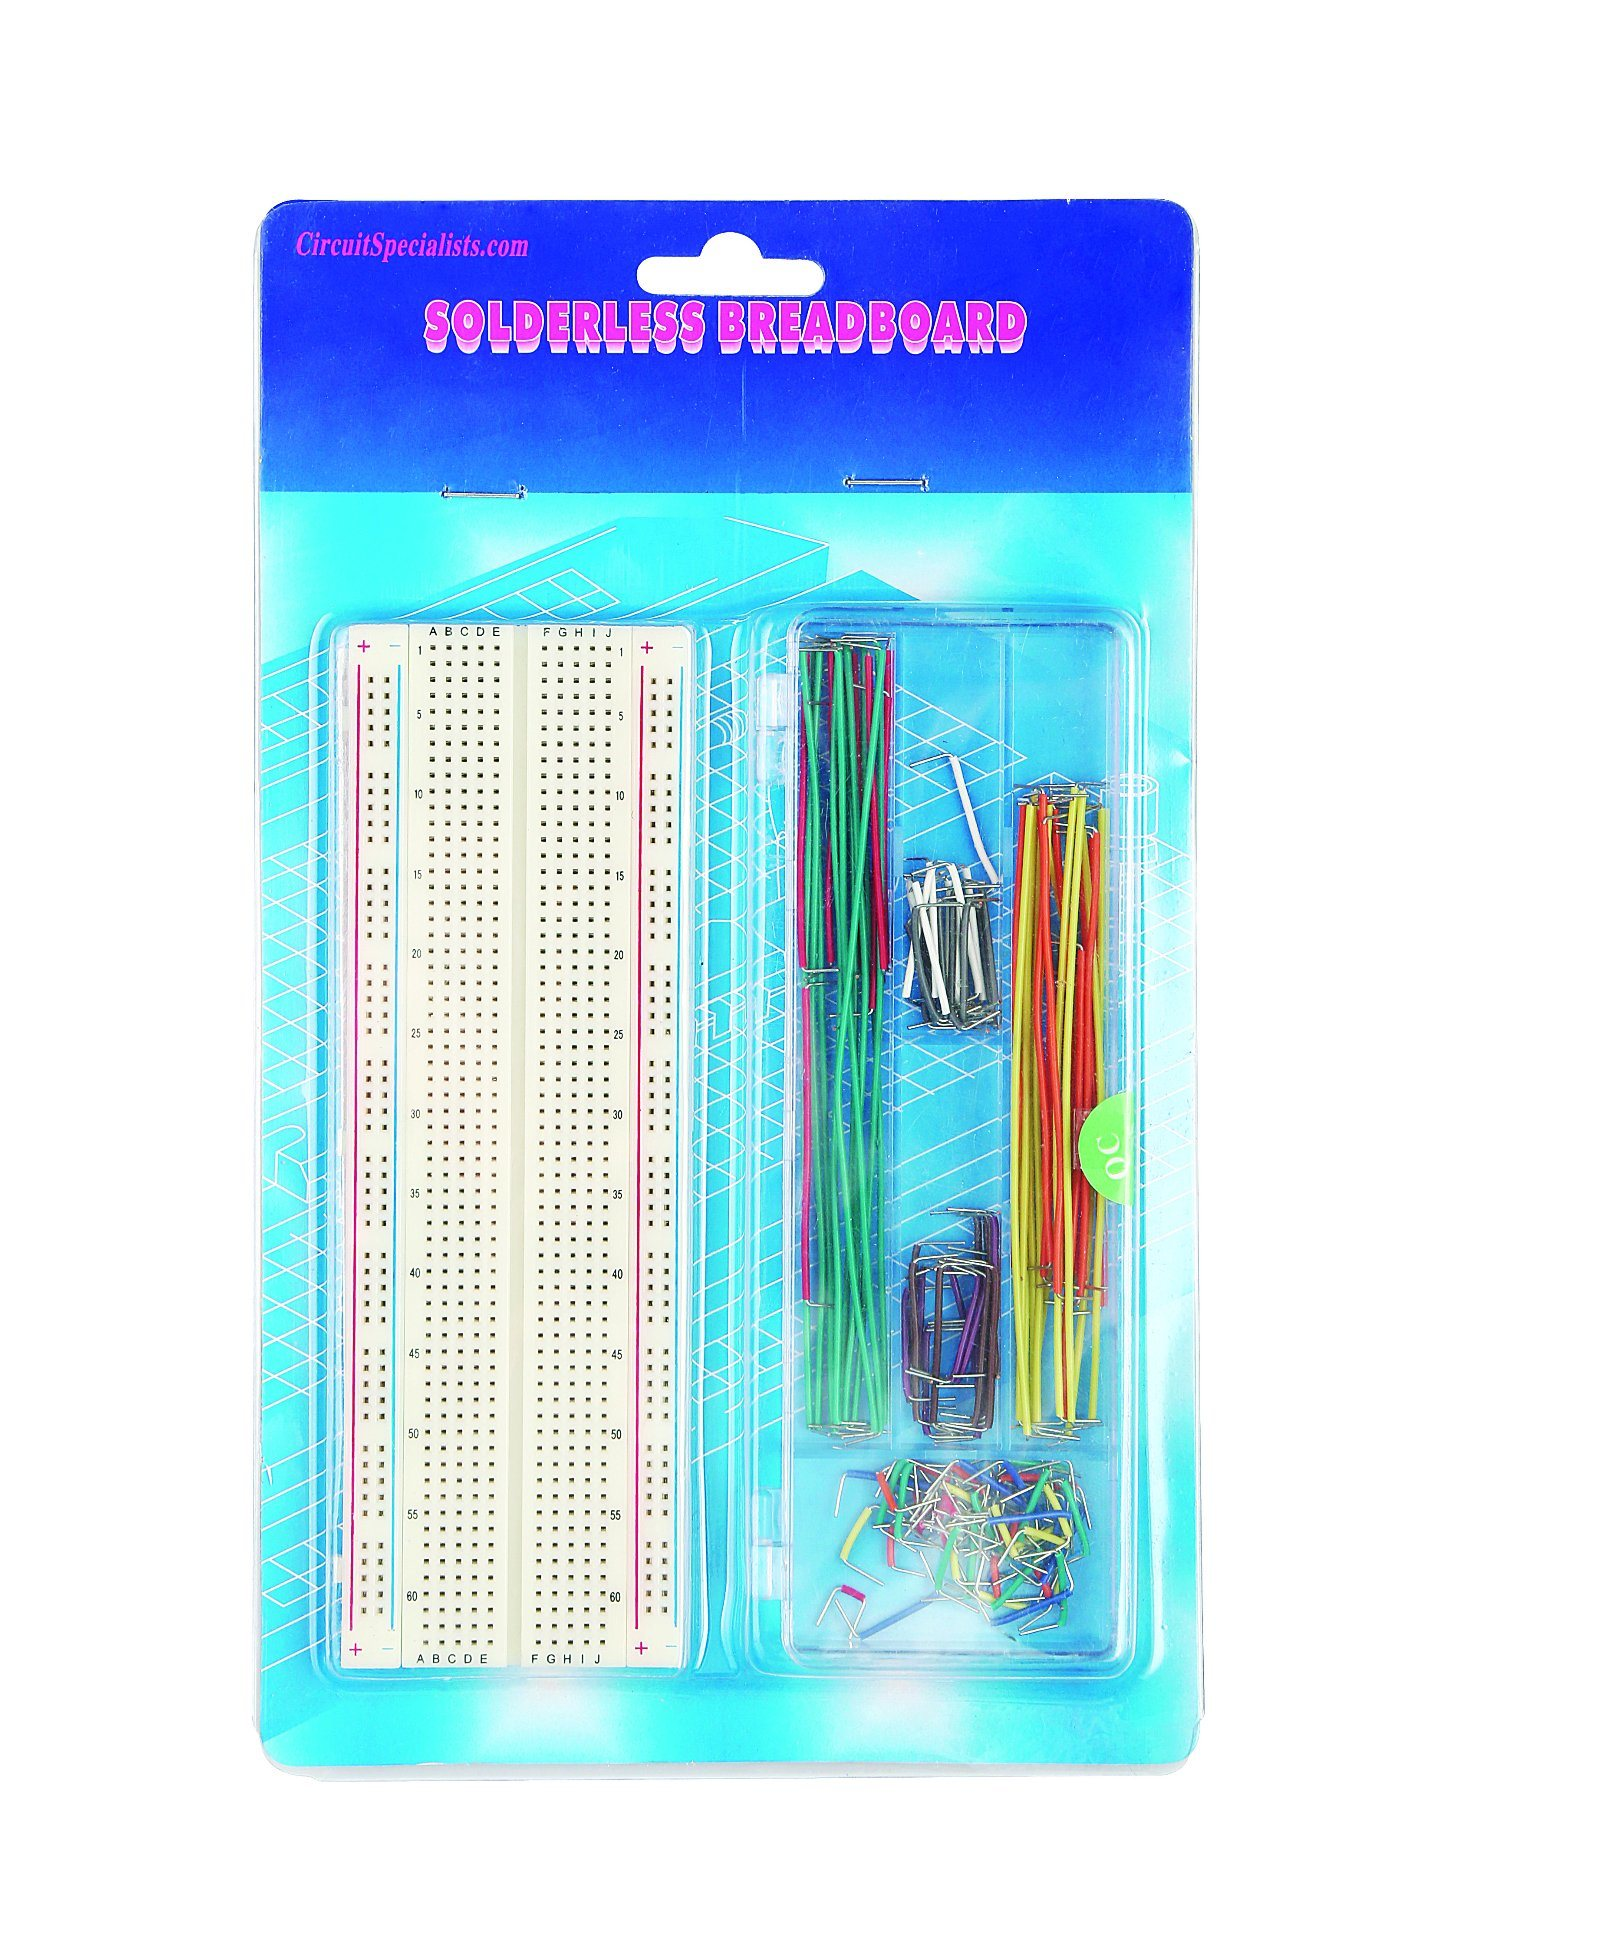 China 830 Points Breadboard With 140 Pcs Jumper Wire Transparent Solderless Showing The Metal Strips For Tie